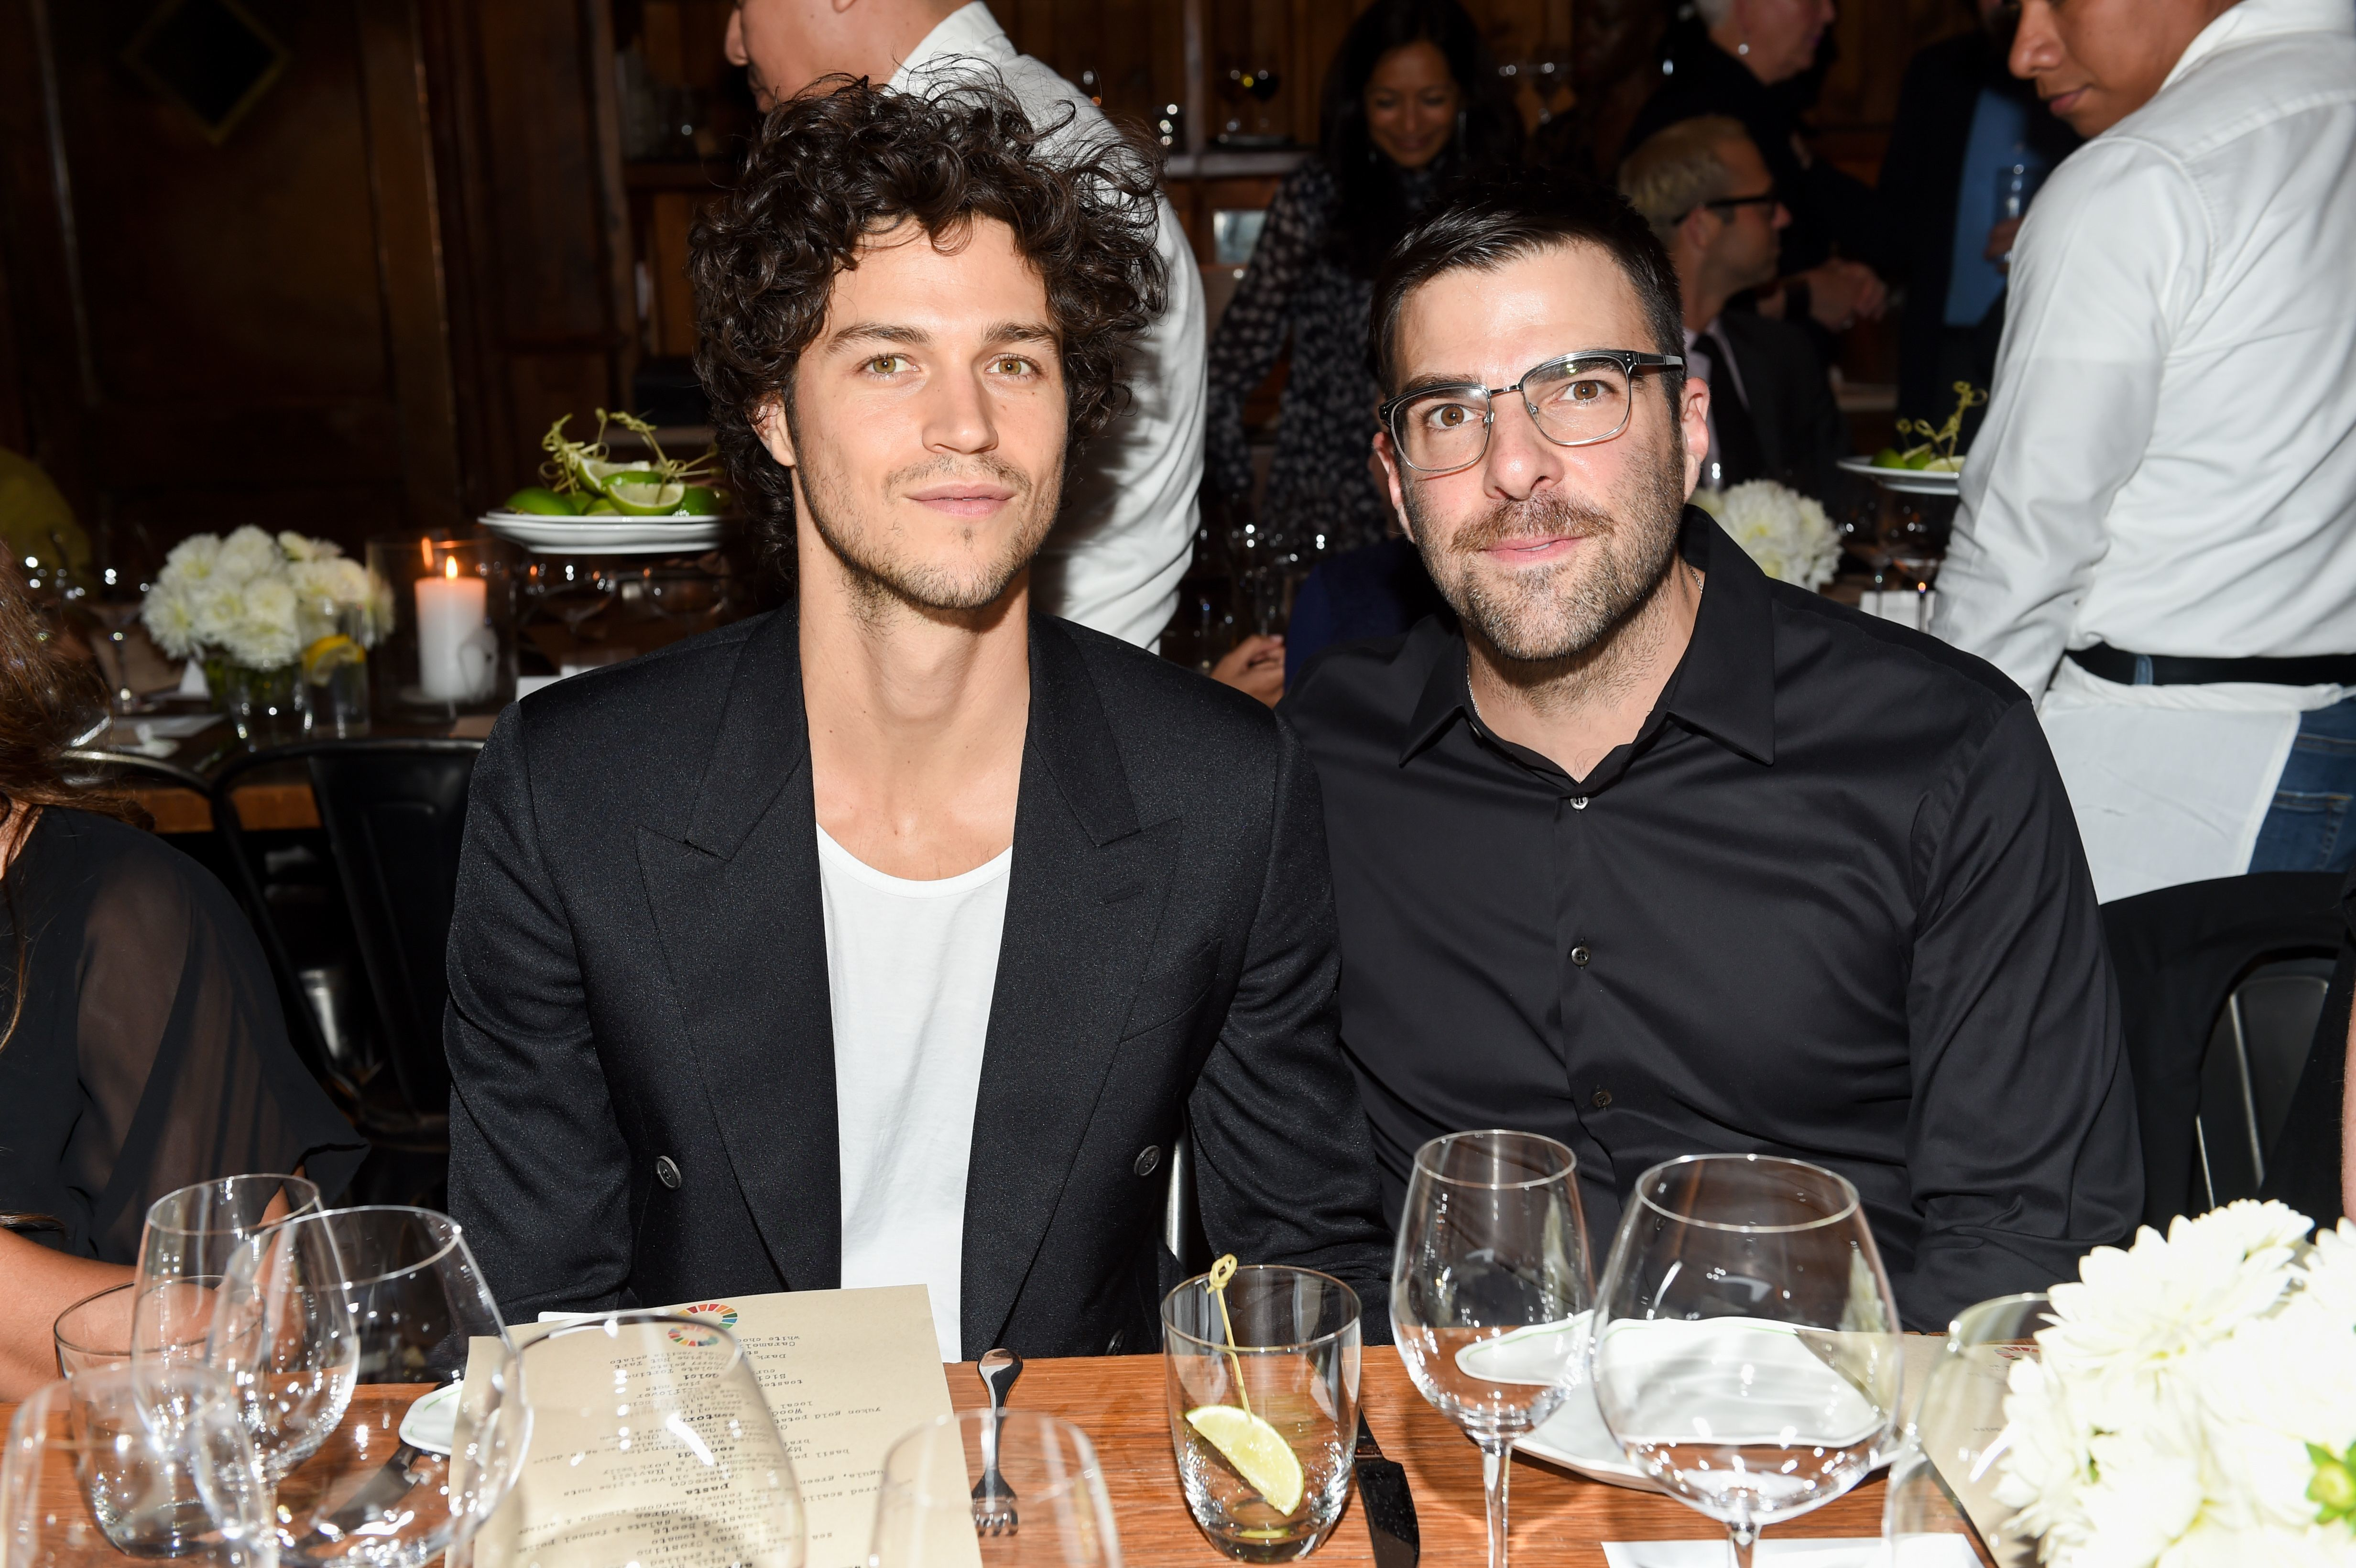 Miles McMillan and Zachary Quinto attend the Power, Influence and Gender Dinner hosted by Hearst in New York City on Sept. 20, 2017.